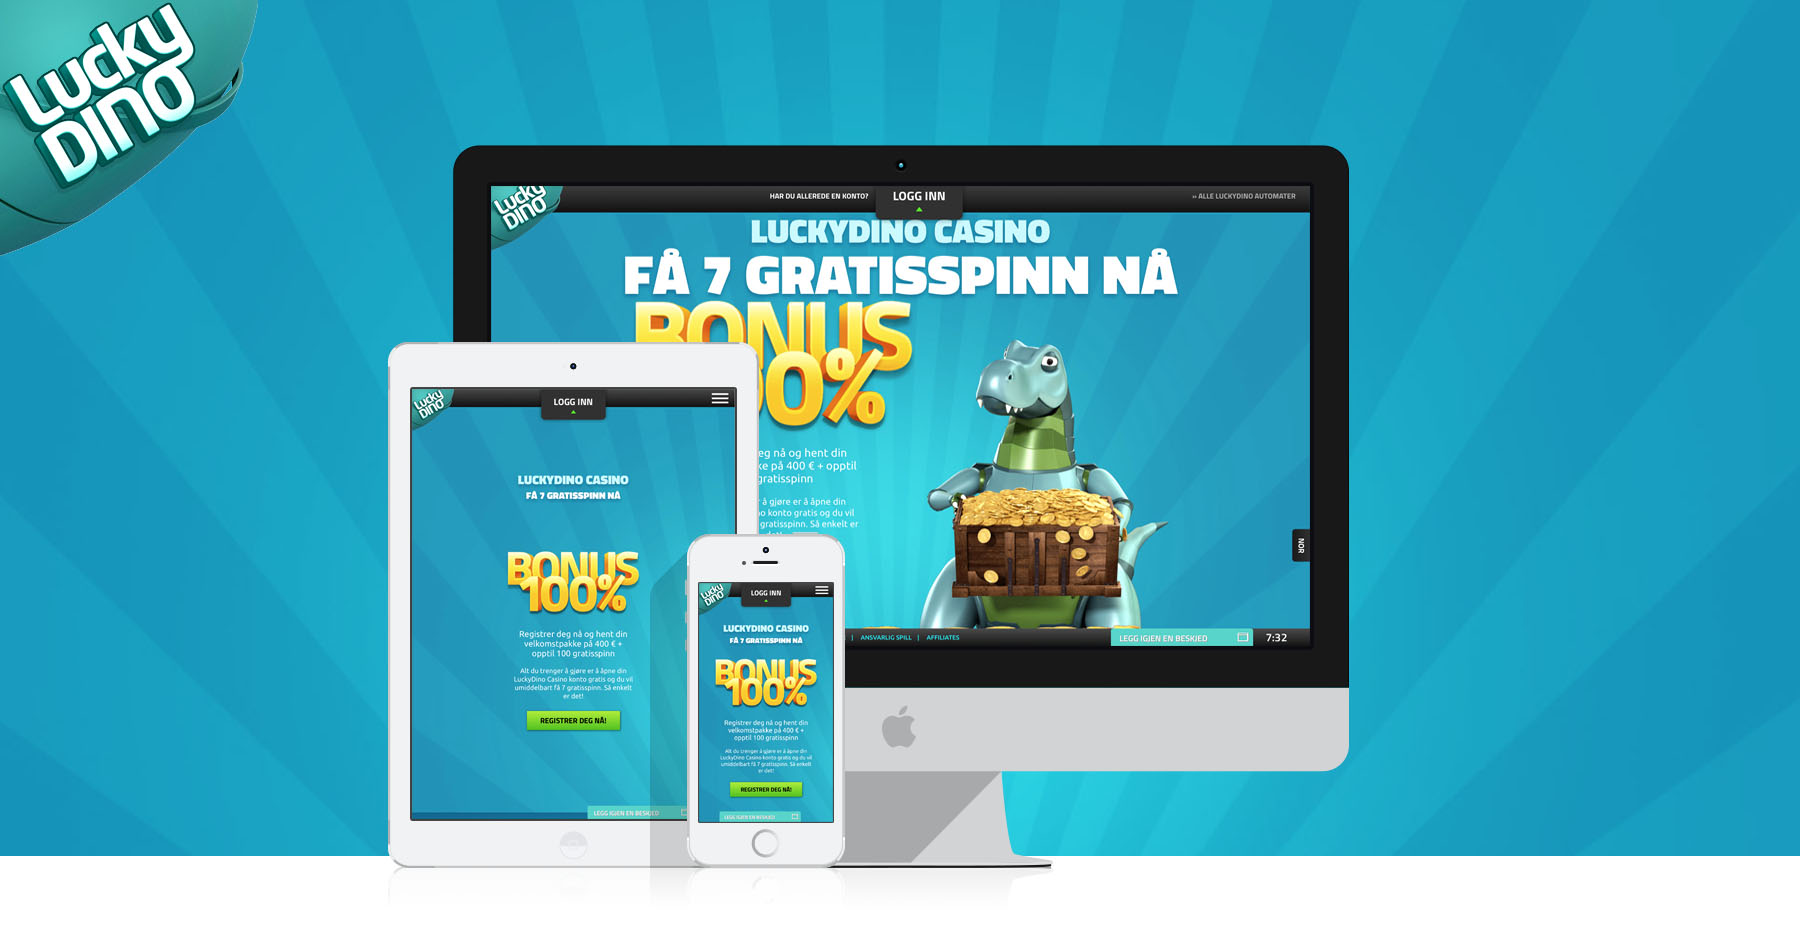 Luckydino | Casinorge